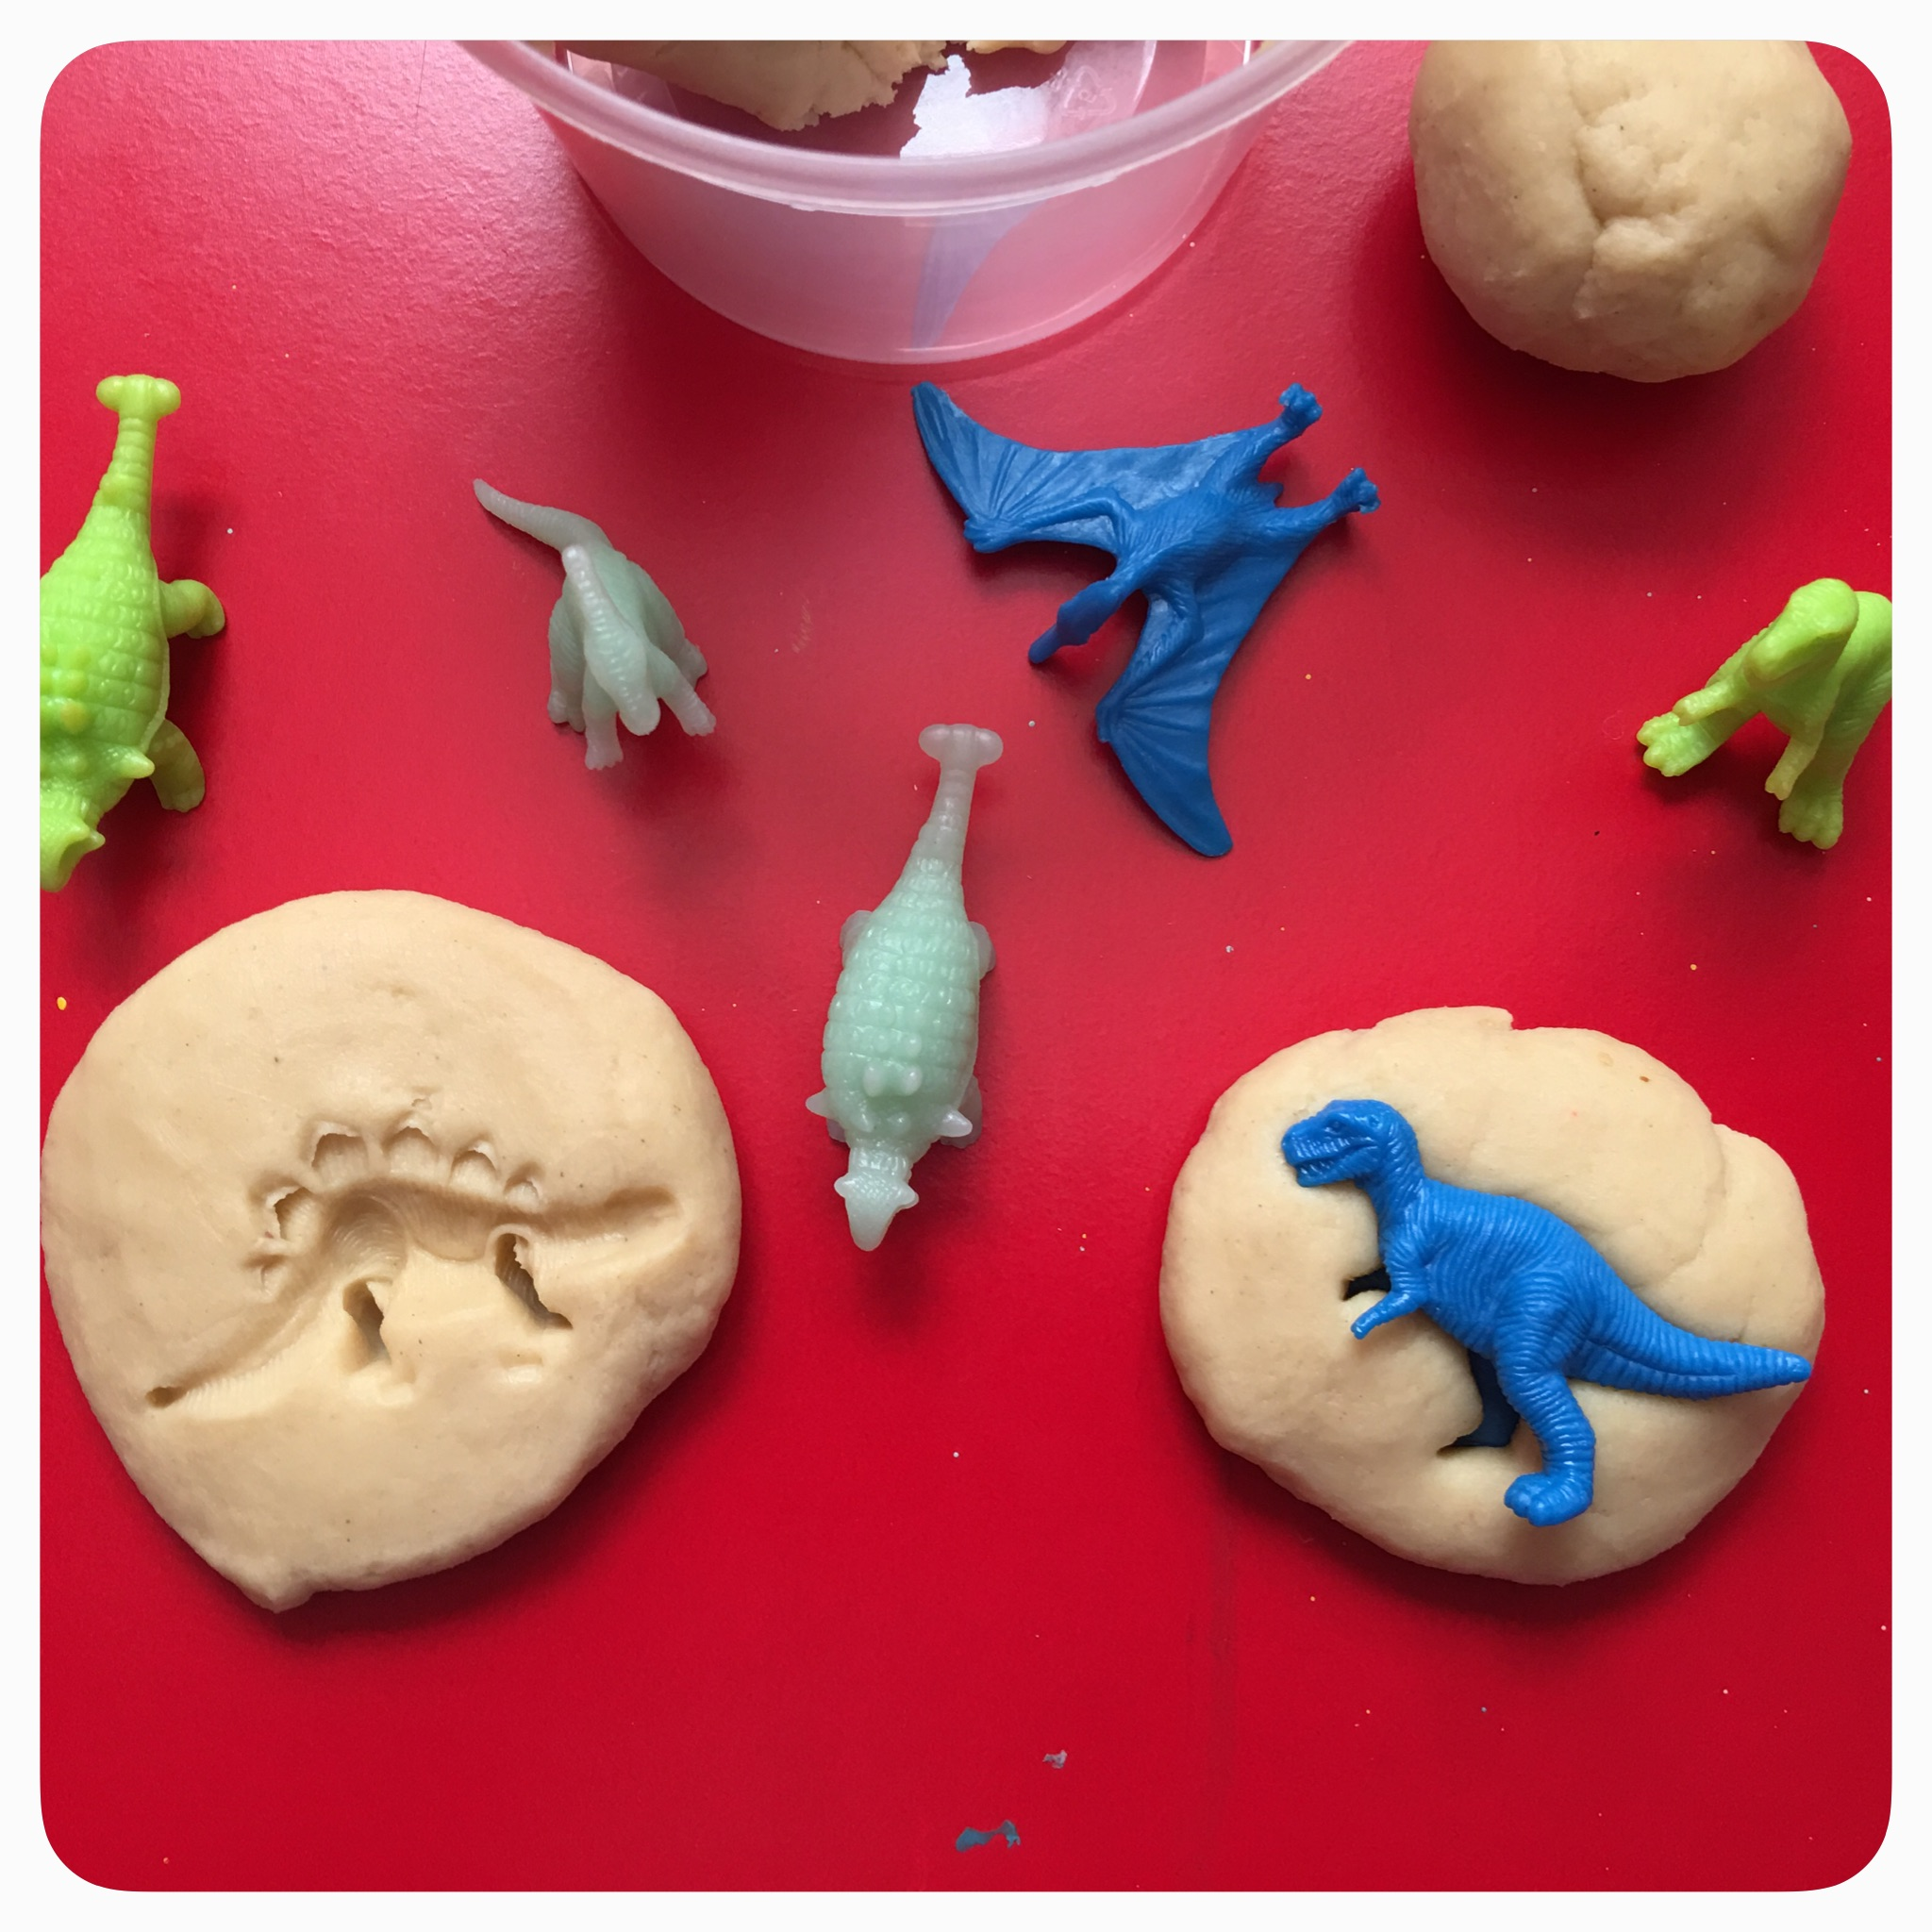 Creating simple play-dough invitations to play for exploring Dinosaurs.